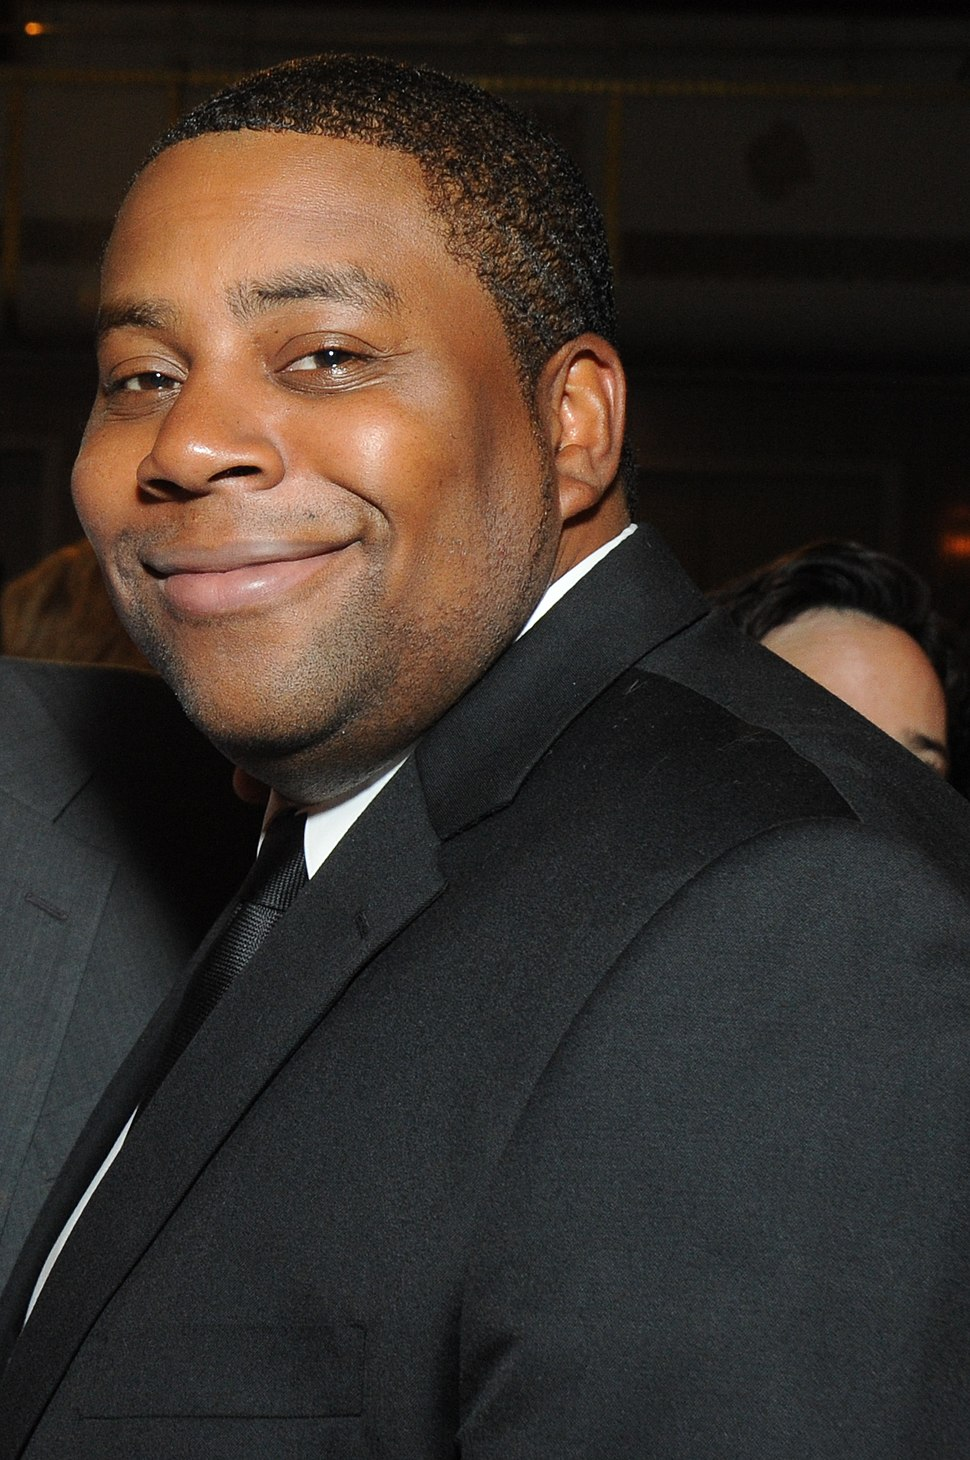 Kenan Thompson 2012 (cropped)